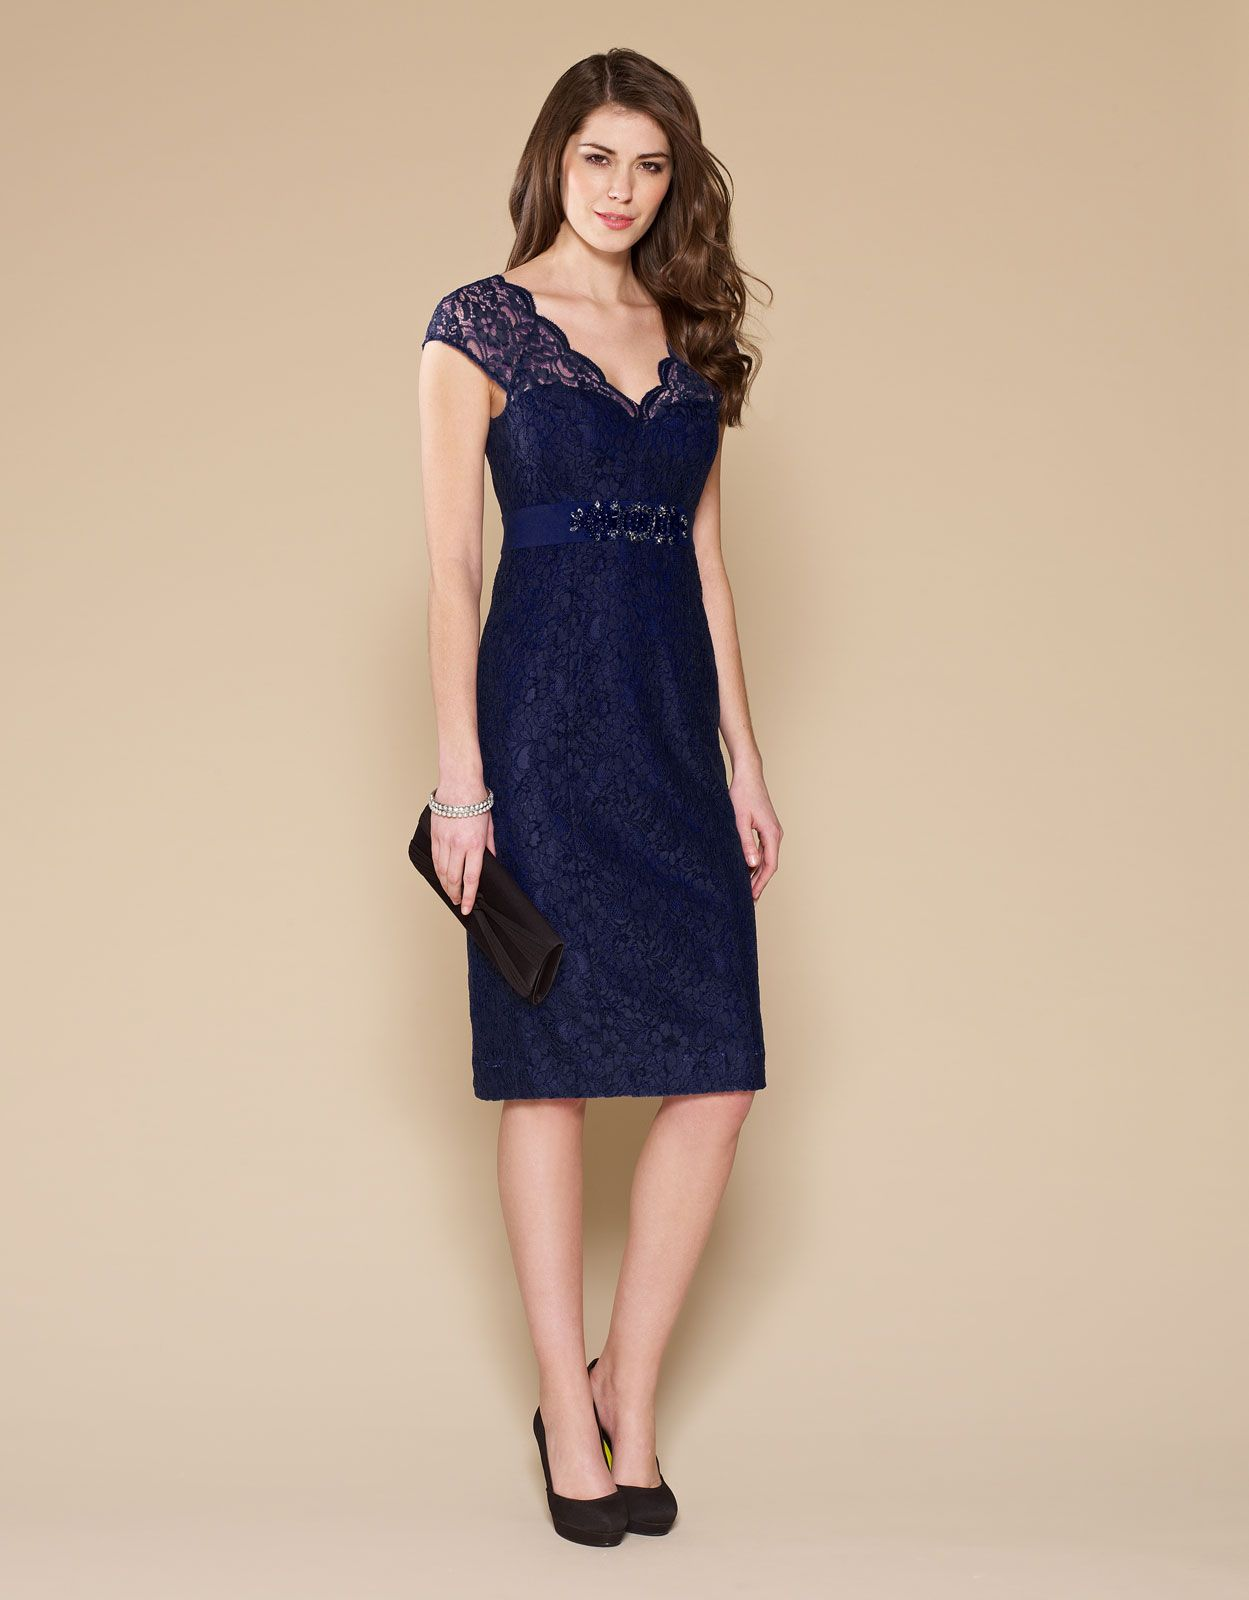 2daabb29de5f Echoes of something special! ;-) [Monsoon, Layla Lace Dress, #3532330210]